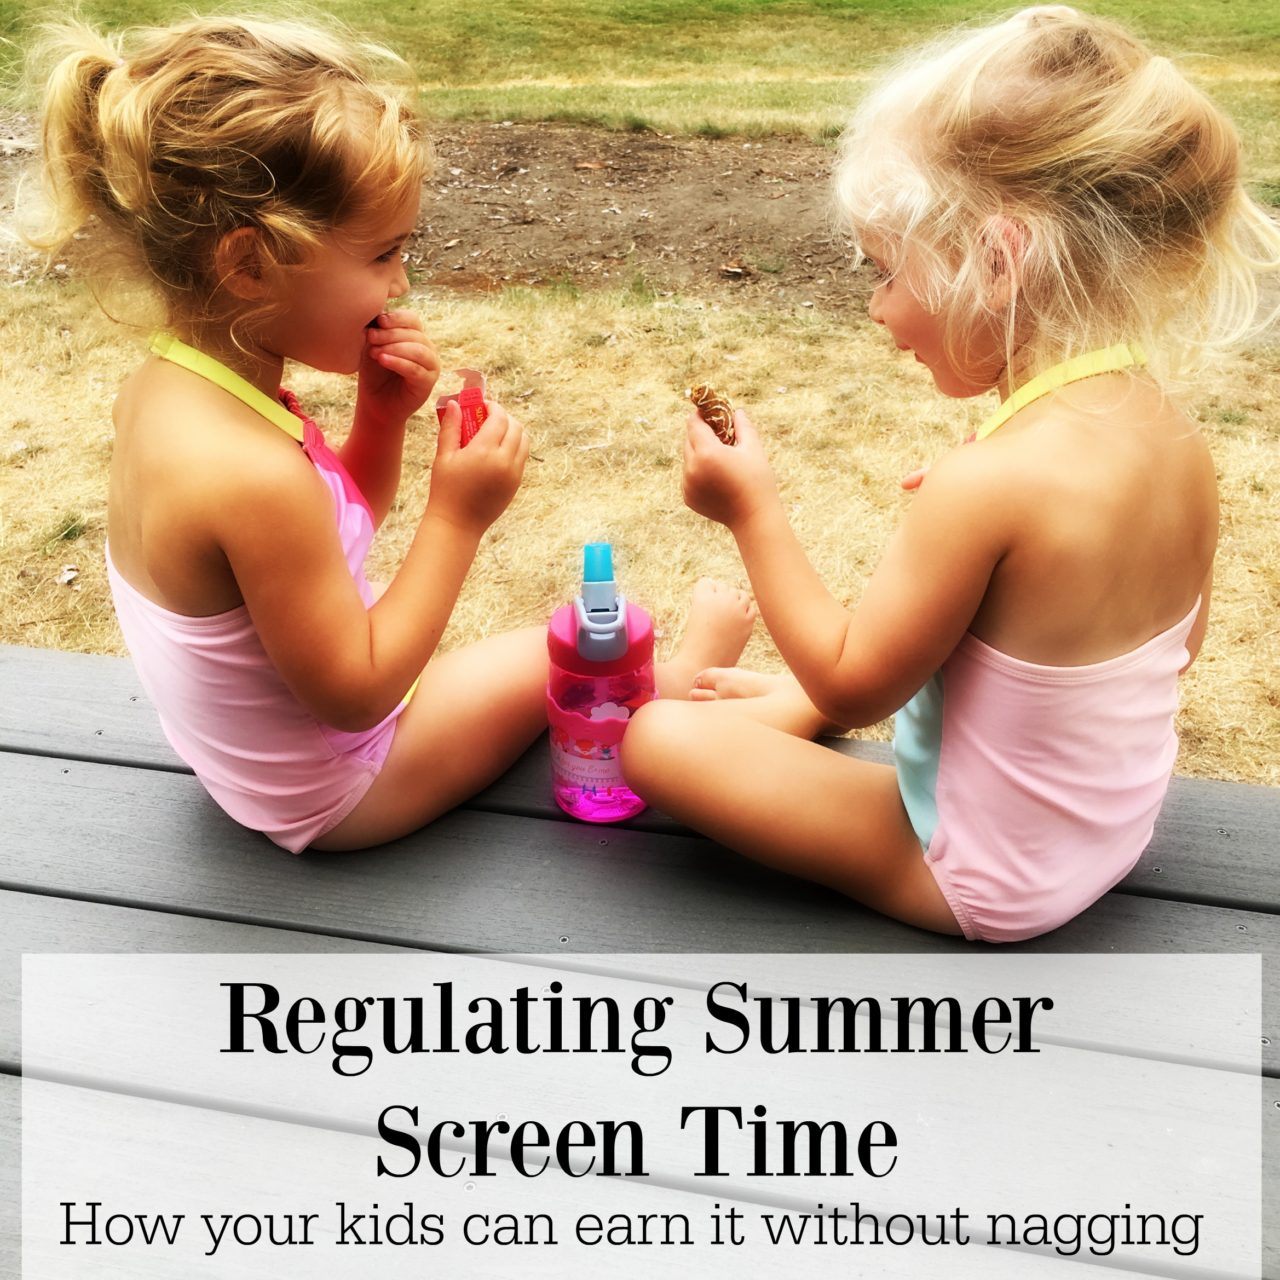 How To Earn Summer Screen Time For Your Kids